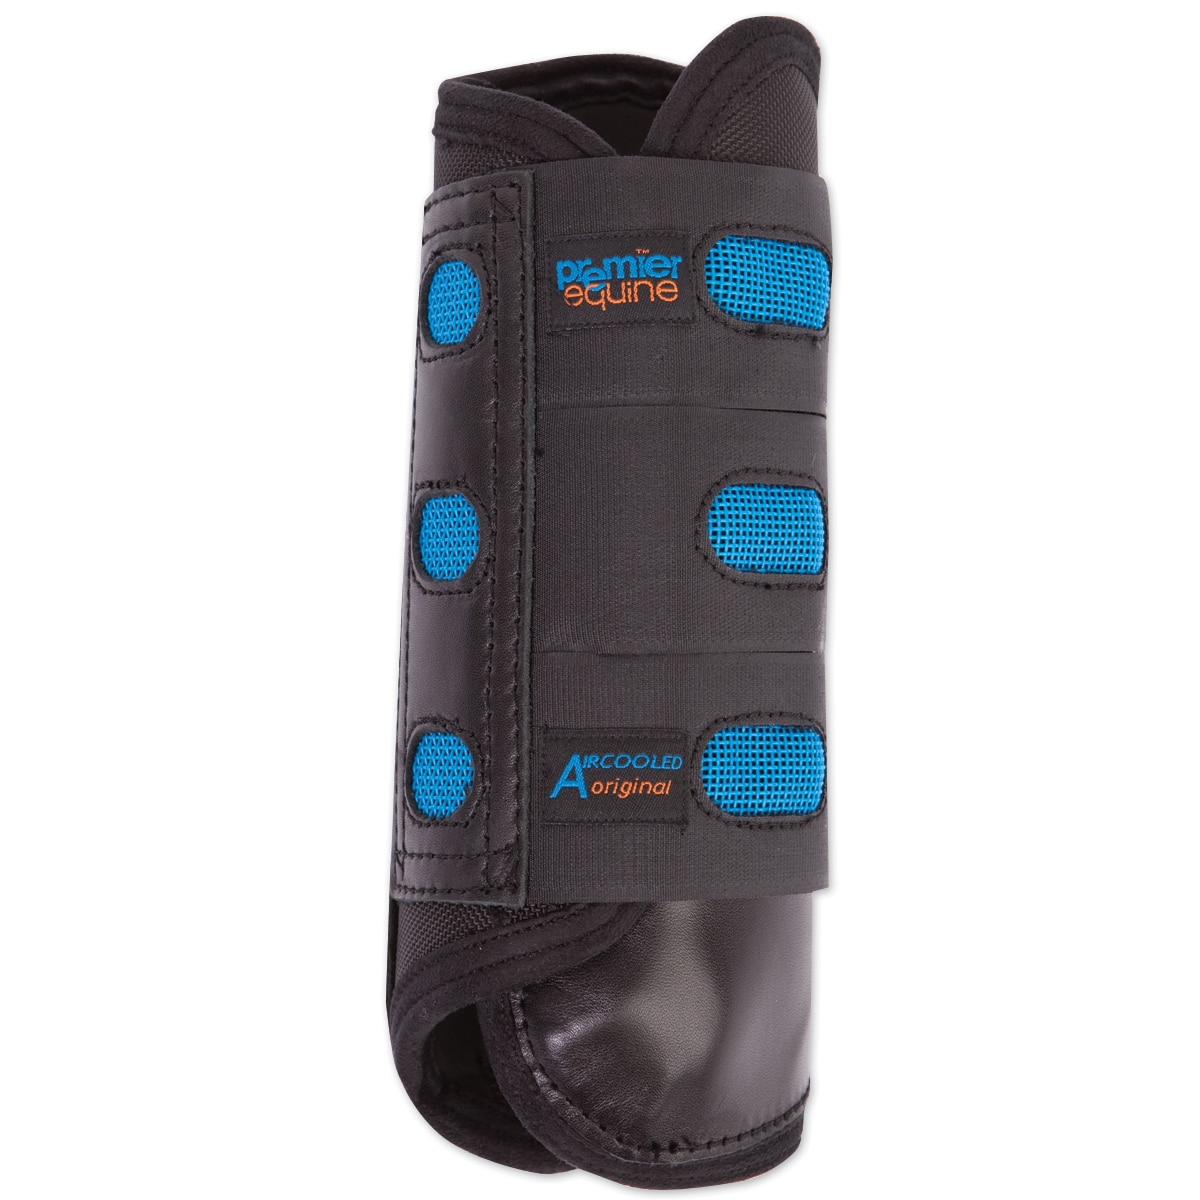 Premier Equine Air Cooled Boots